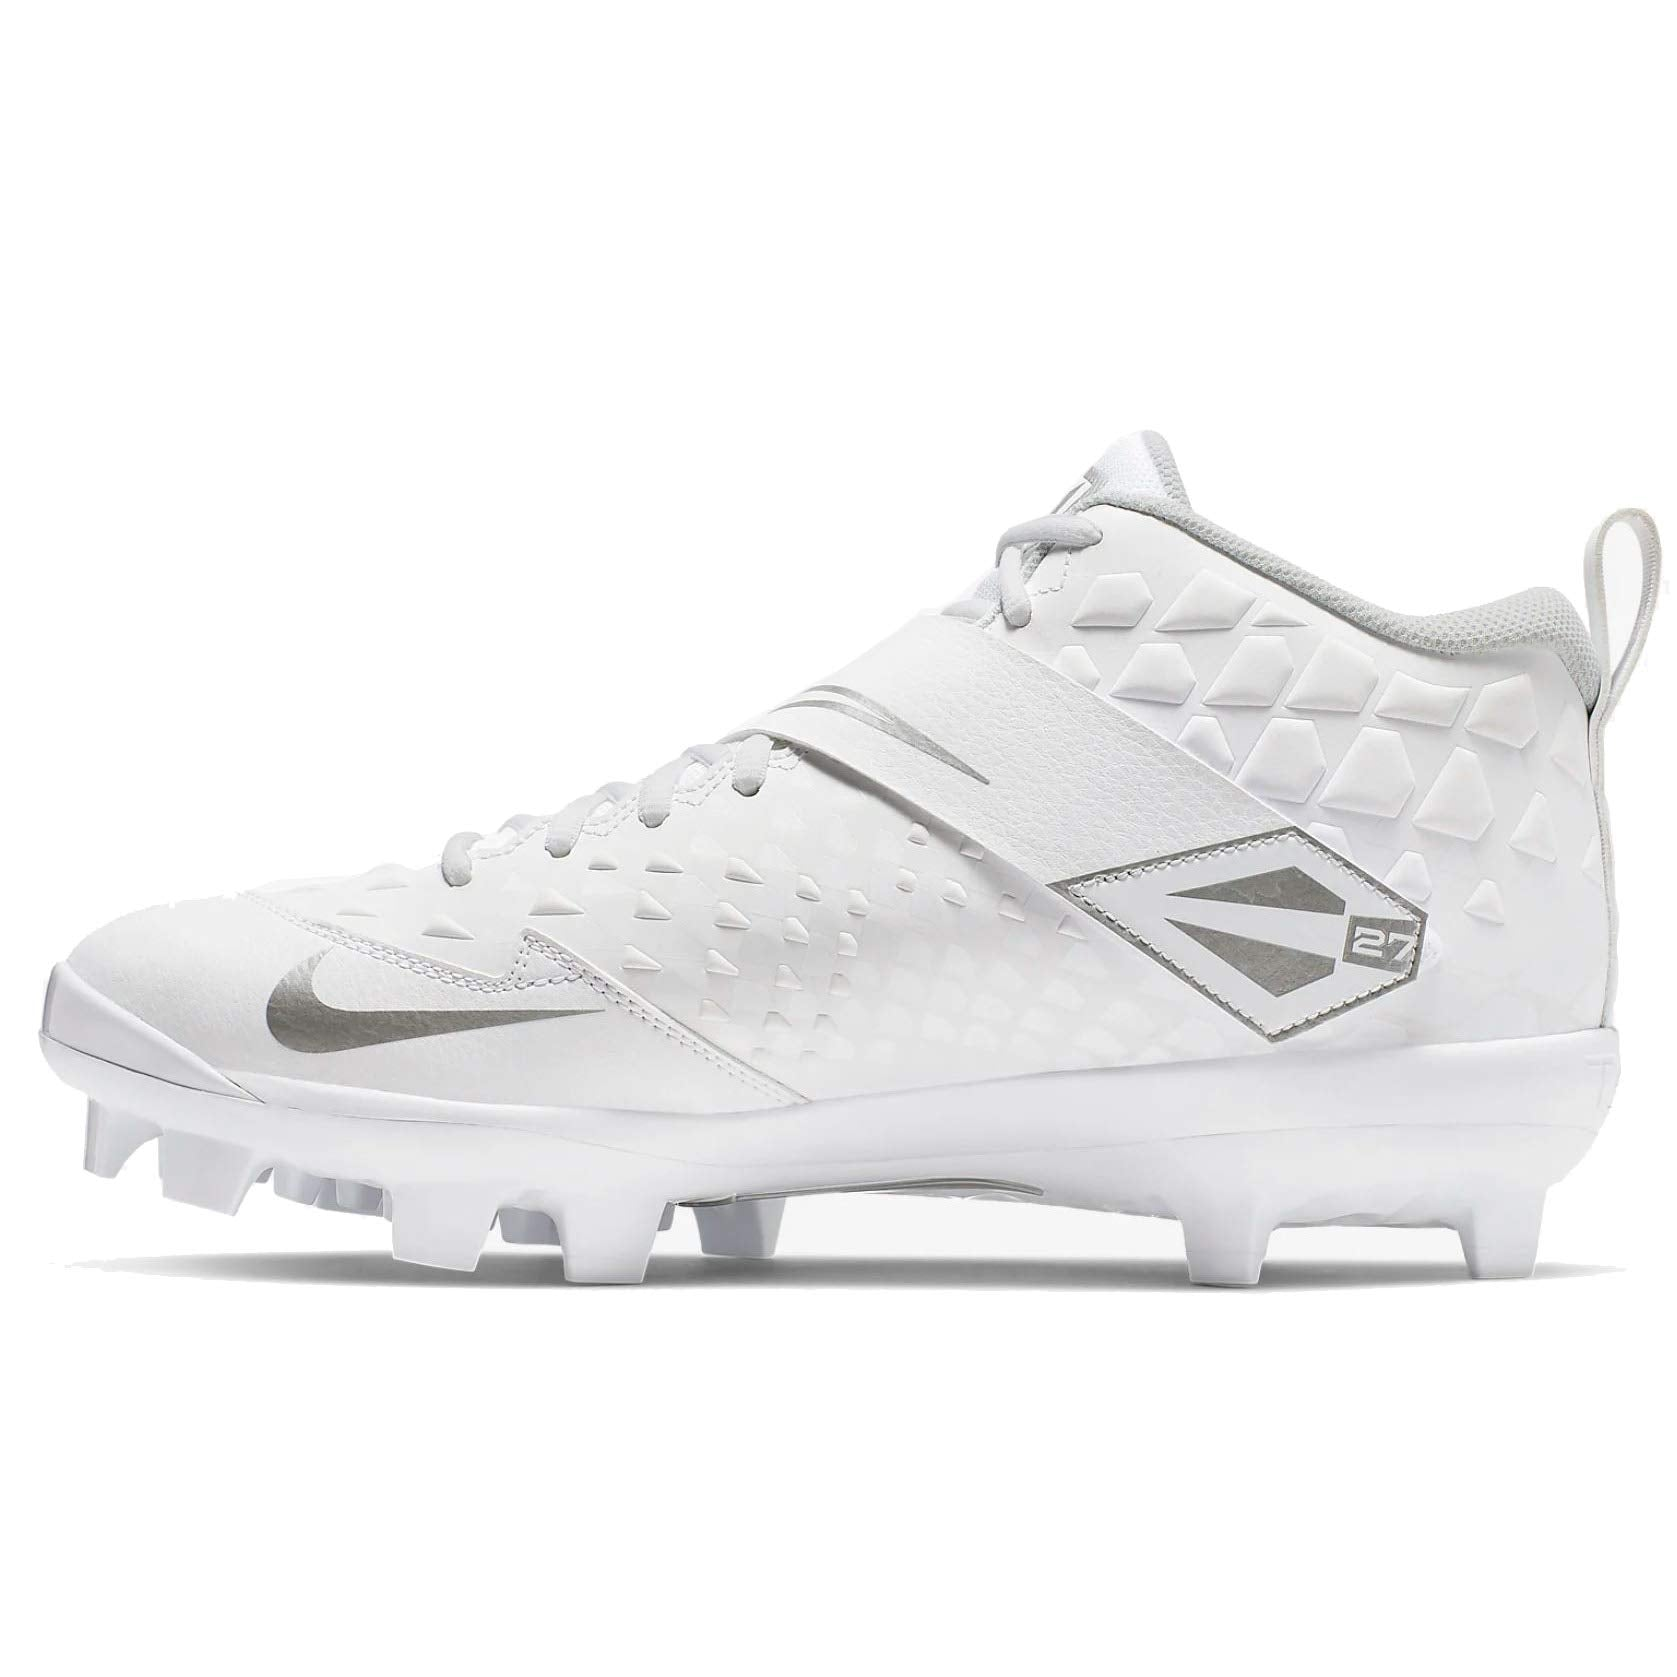 Nike Force Trout 6 Pro MCS Mens At3461-100